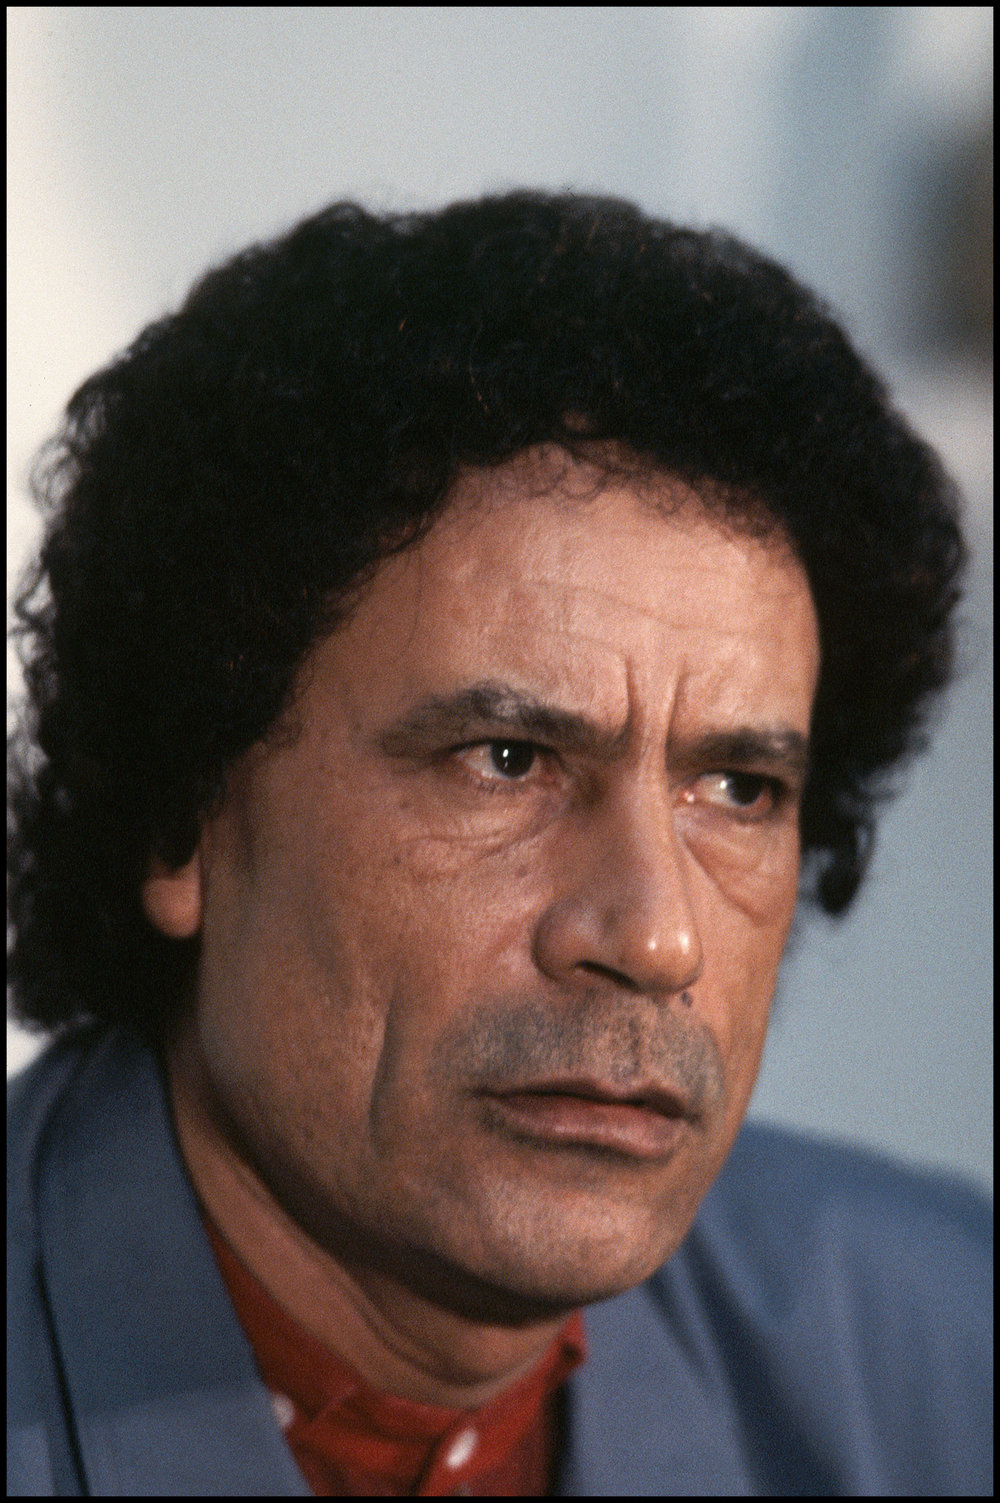 1986, Tripoli, Libya --- This photograph of Libyan political leader Muammar Qadaffi was taken during a time of heightened tension between Libya and the United States.